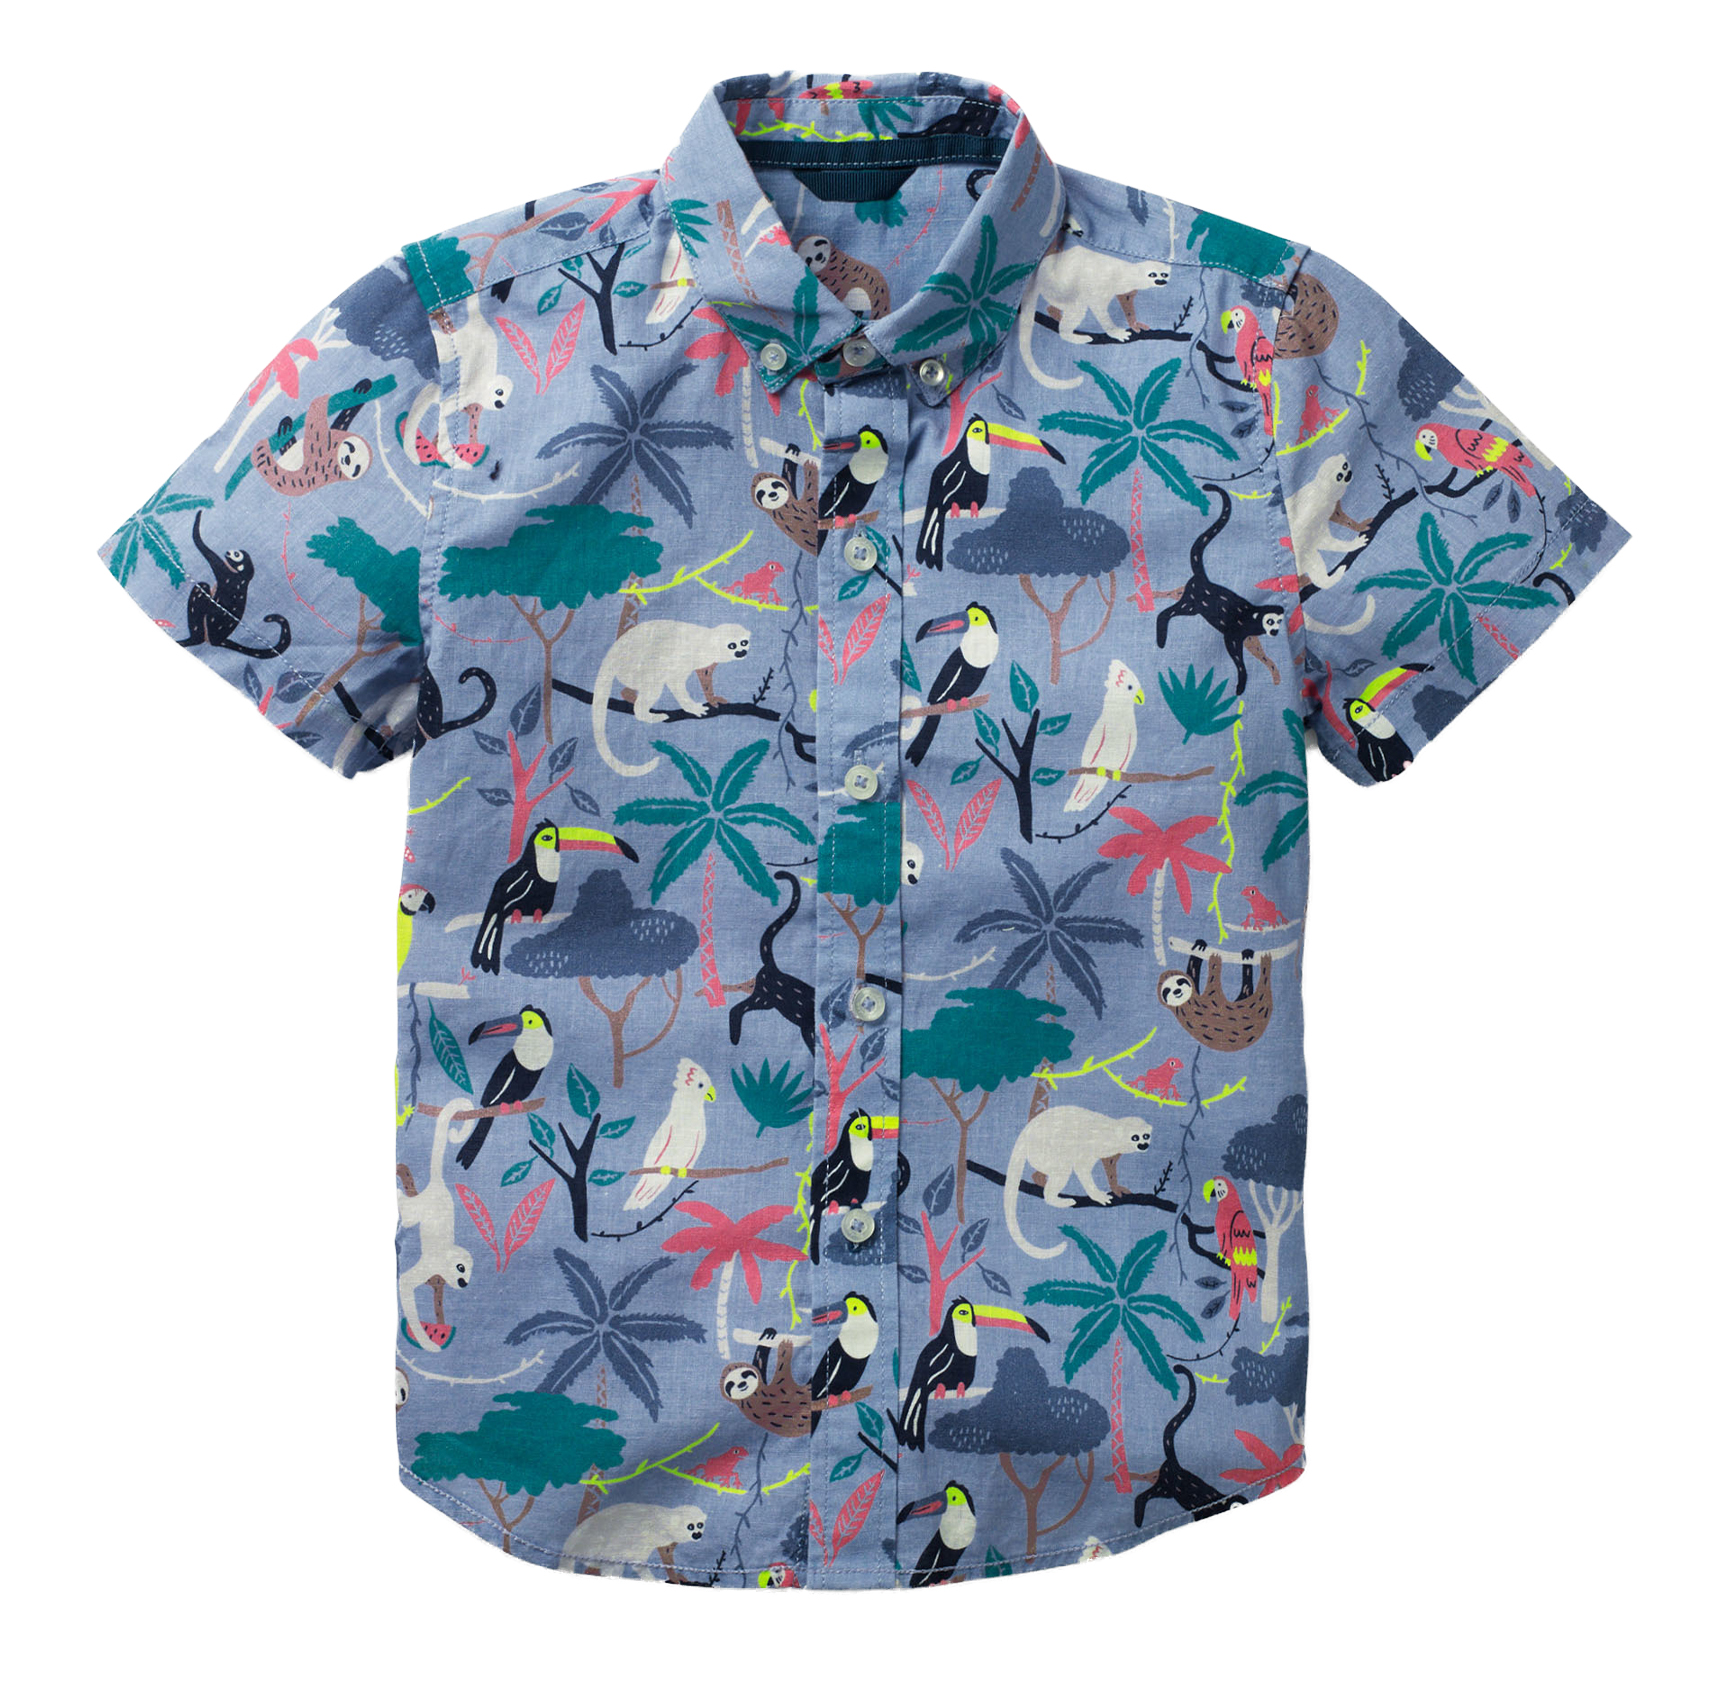 Caribbean Blue Tower Tee for Kids